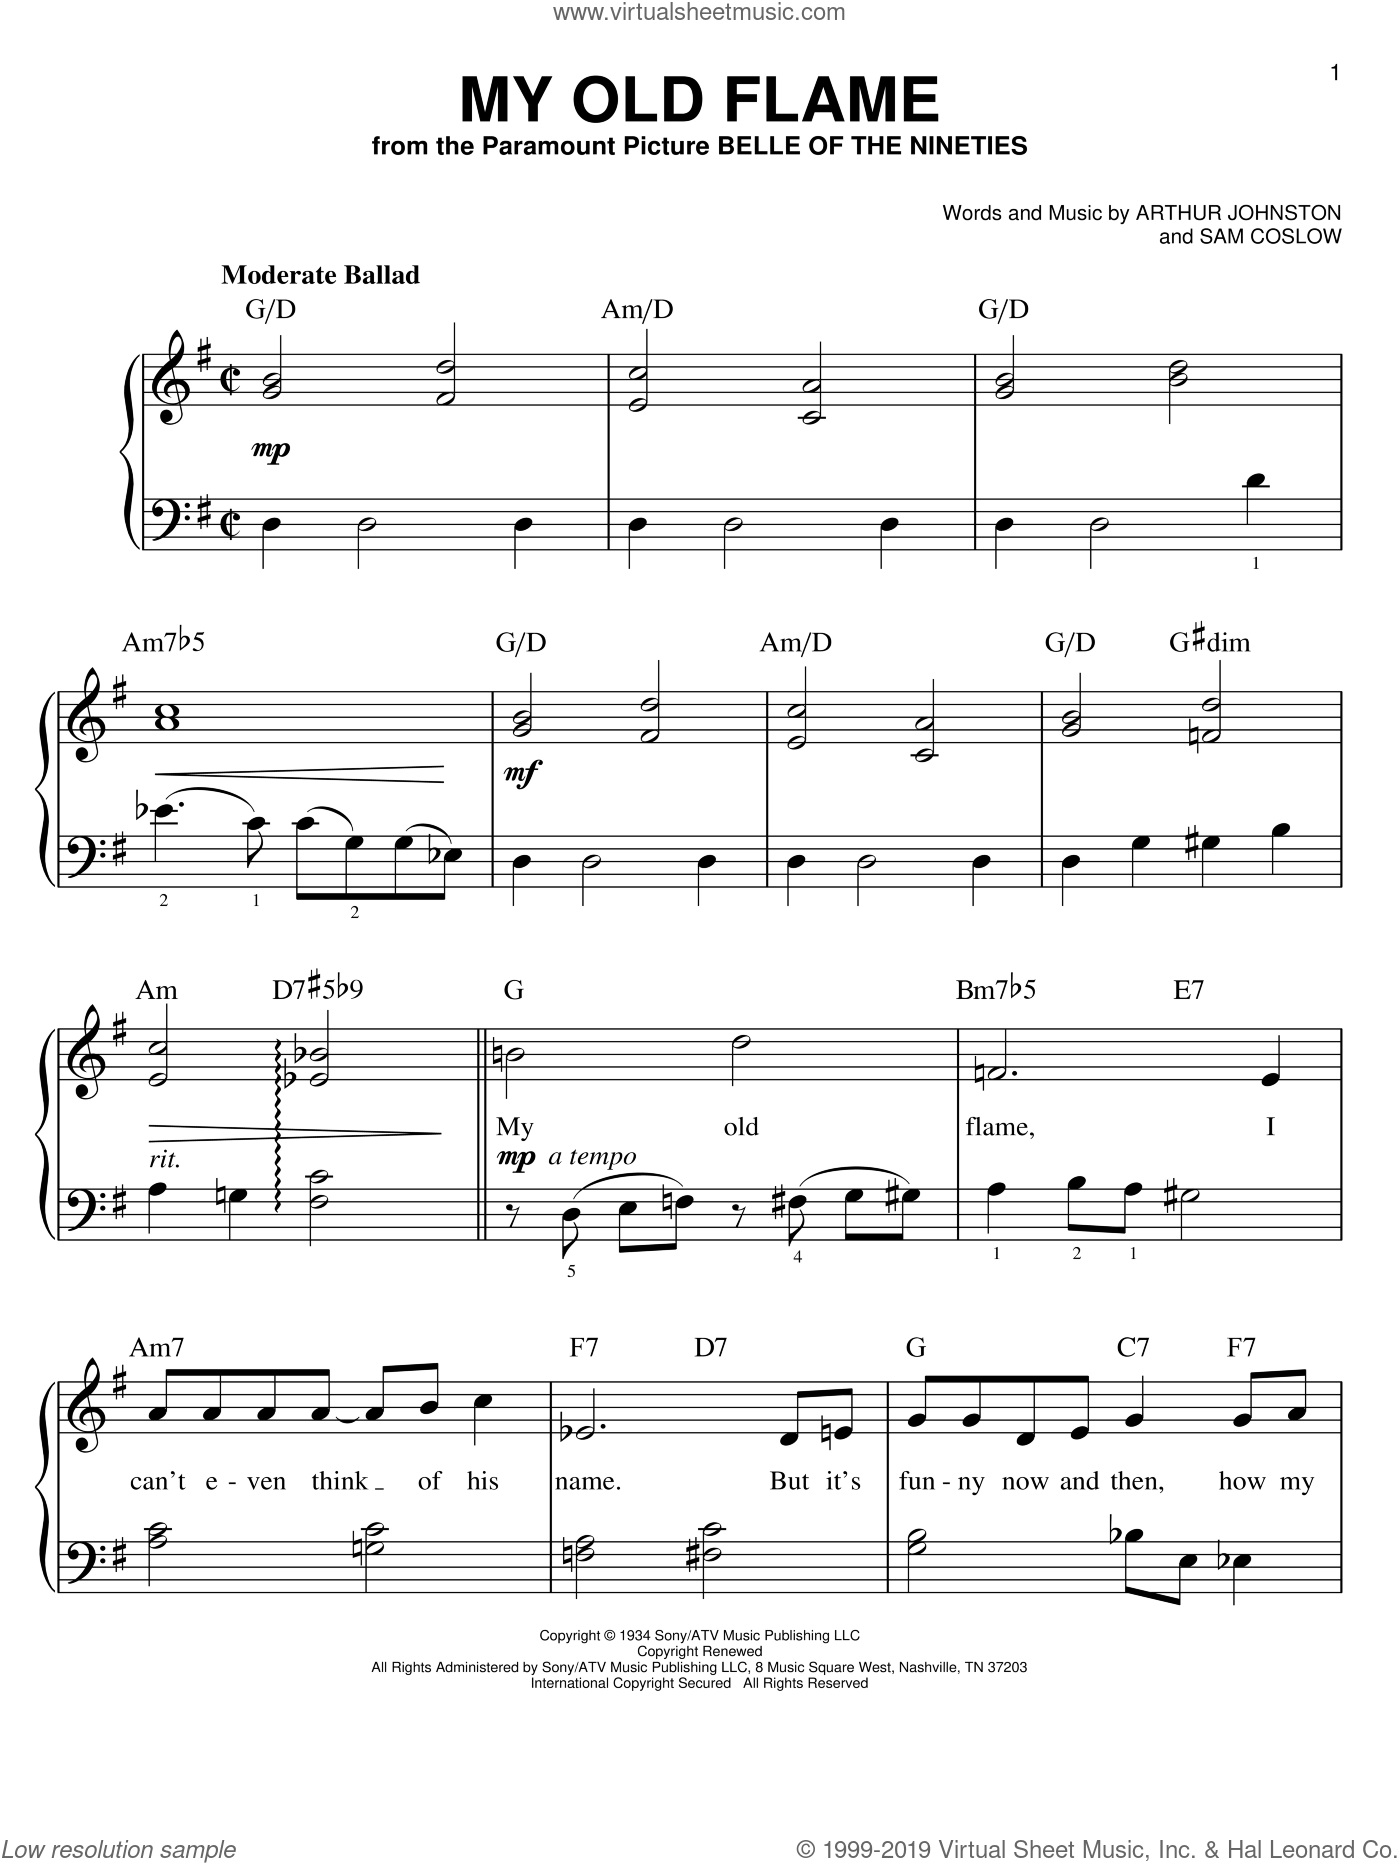 My Old Flame sheet music for piano solo by Peggy Lee, Arthur Johnston and Sam Coslow, easy skill level